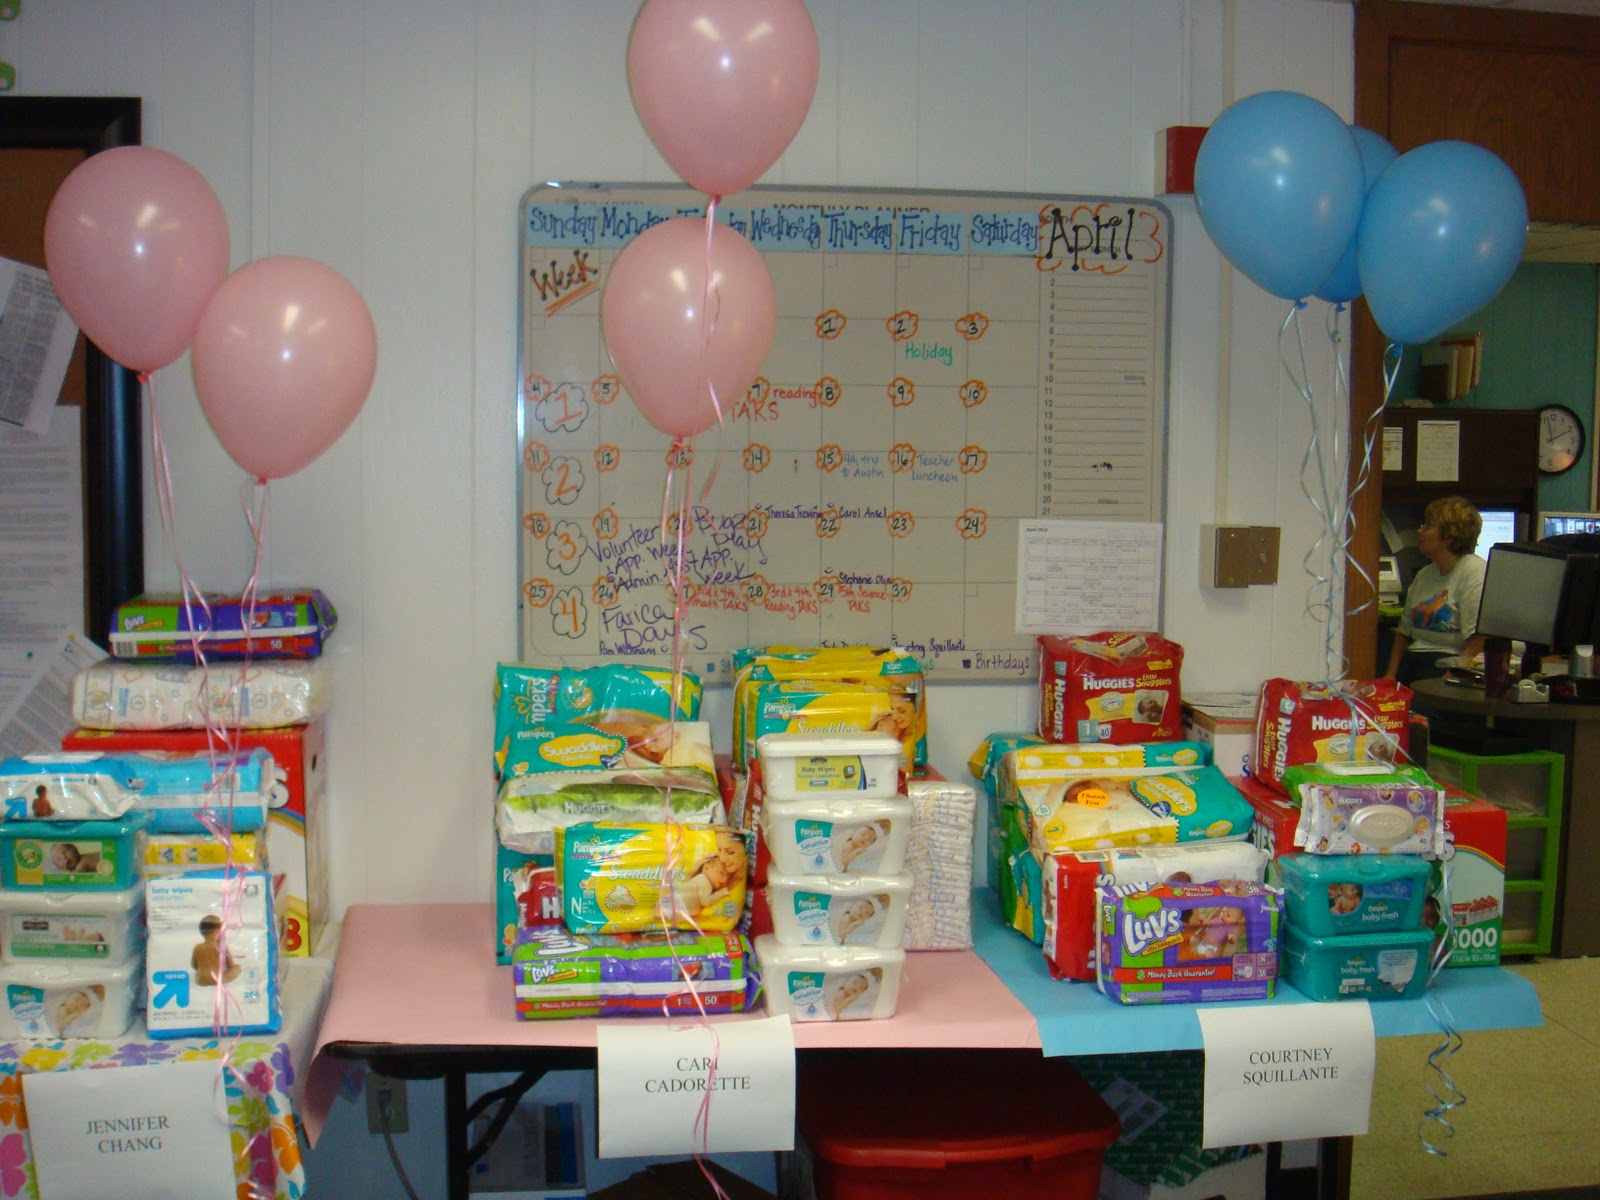 Parents Across Grade Levels Sent In Wipes And Diapers For Us. We Got Them  On Friday! Here Are Some Pics Of The Generosity Of Our Kids And Parents! :)